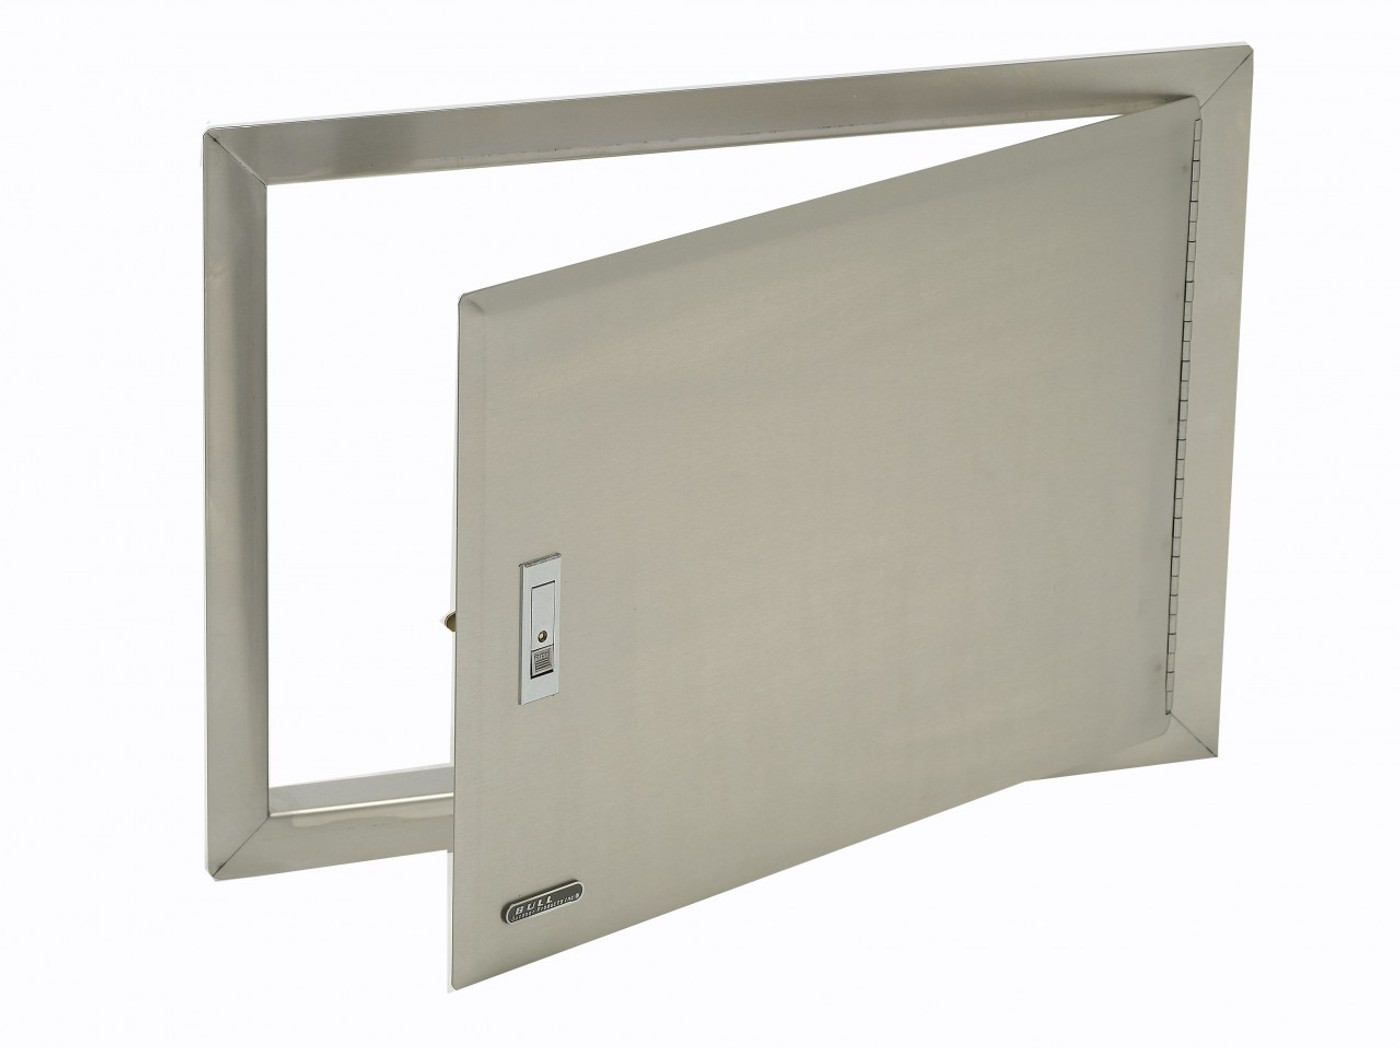 Steel Access Doors And Frames : Stainless steel access door with lock and frame